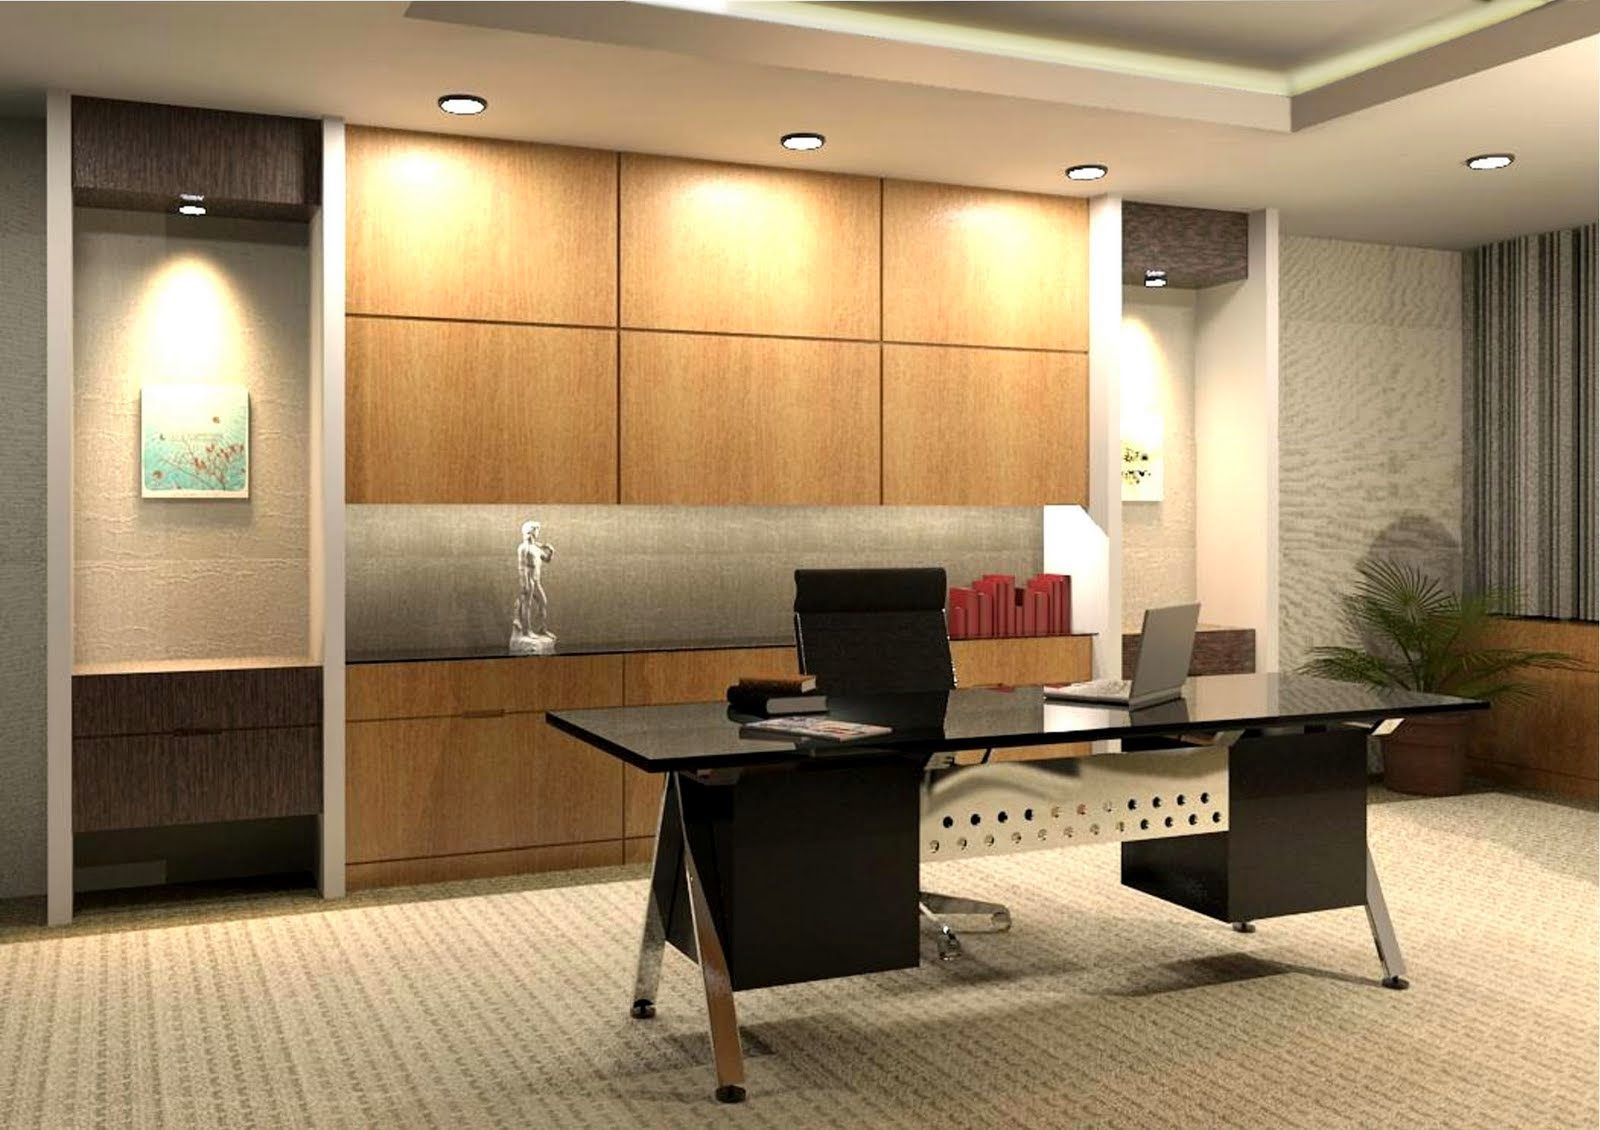 Modern work office decorating ideas 15 inspiring designs for Office room decoration ideas